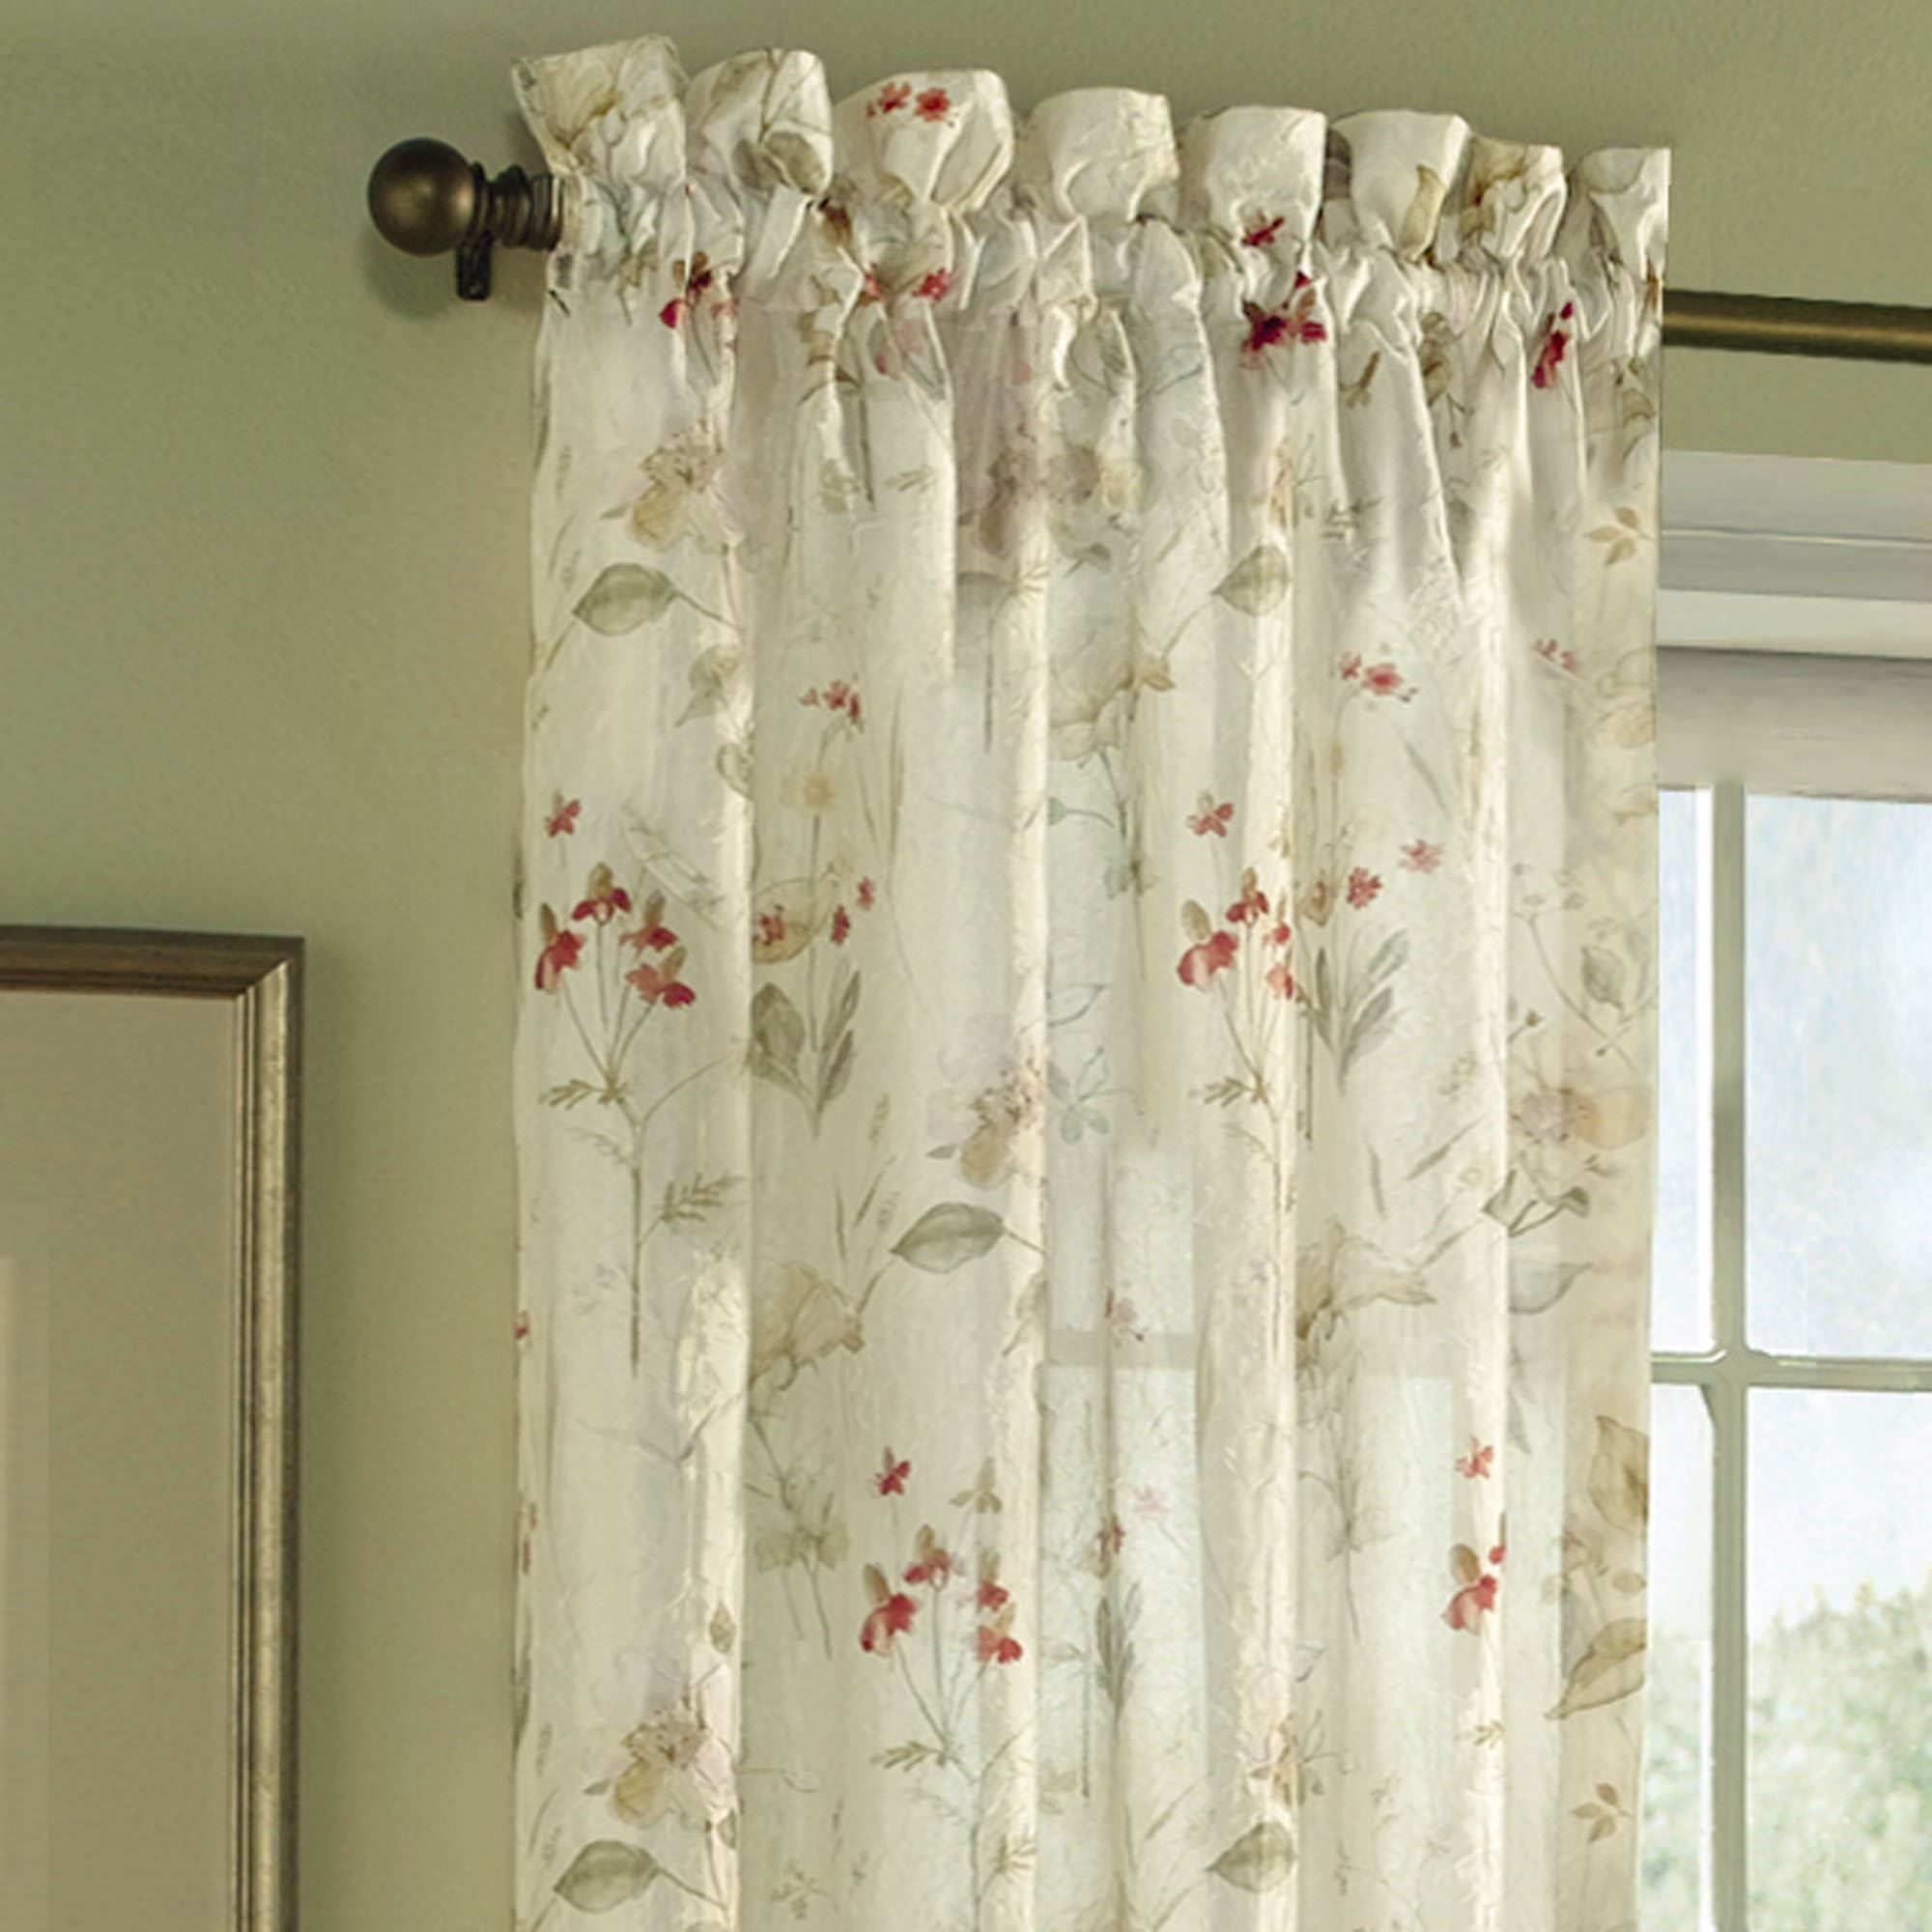 panels tfast ideas incredible light pink curtain sheer of and picture trend popular voile shocking u trends best curtains